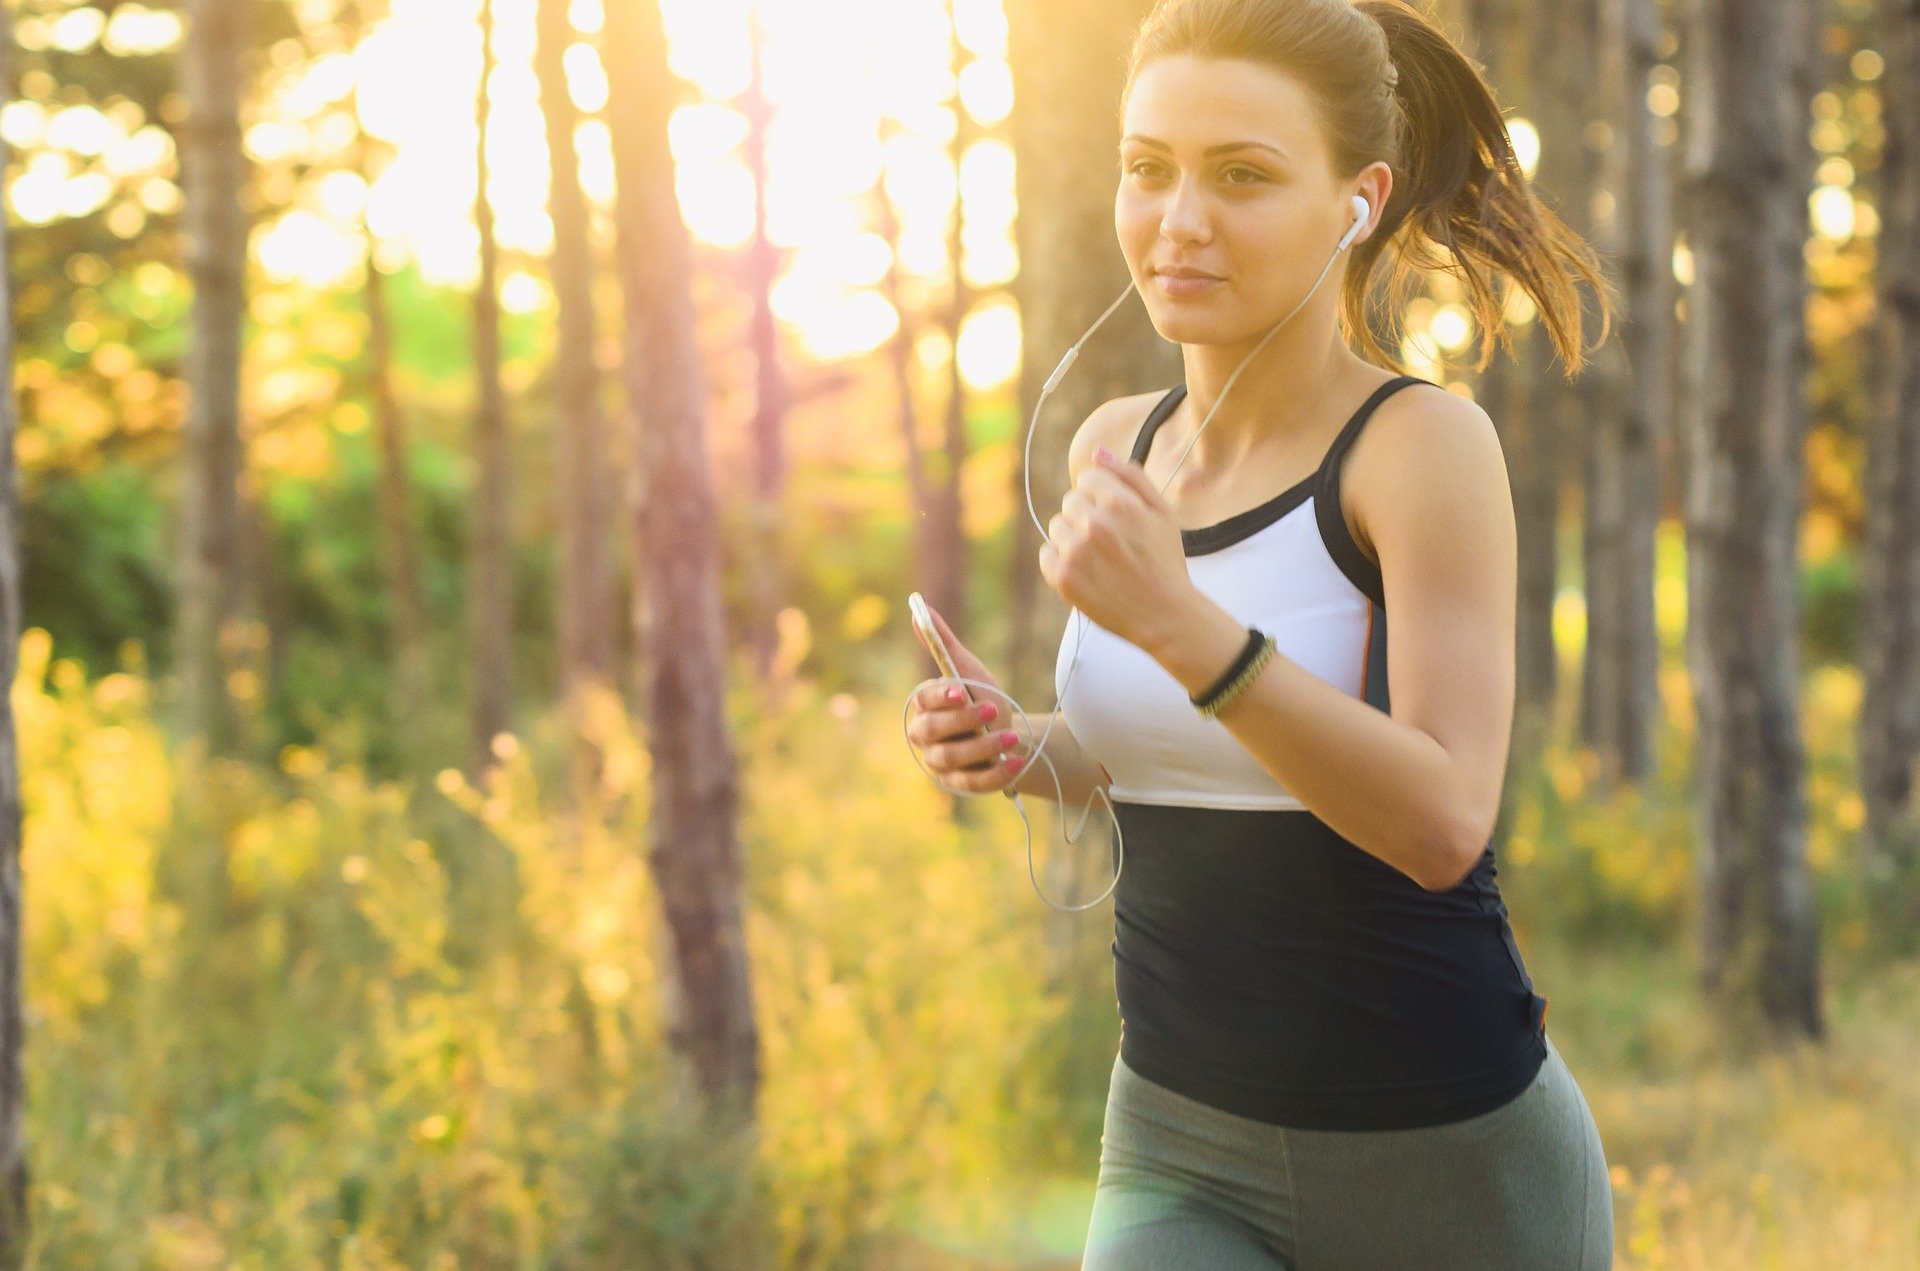 Woman jogging in woods